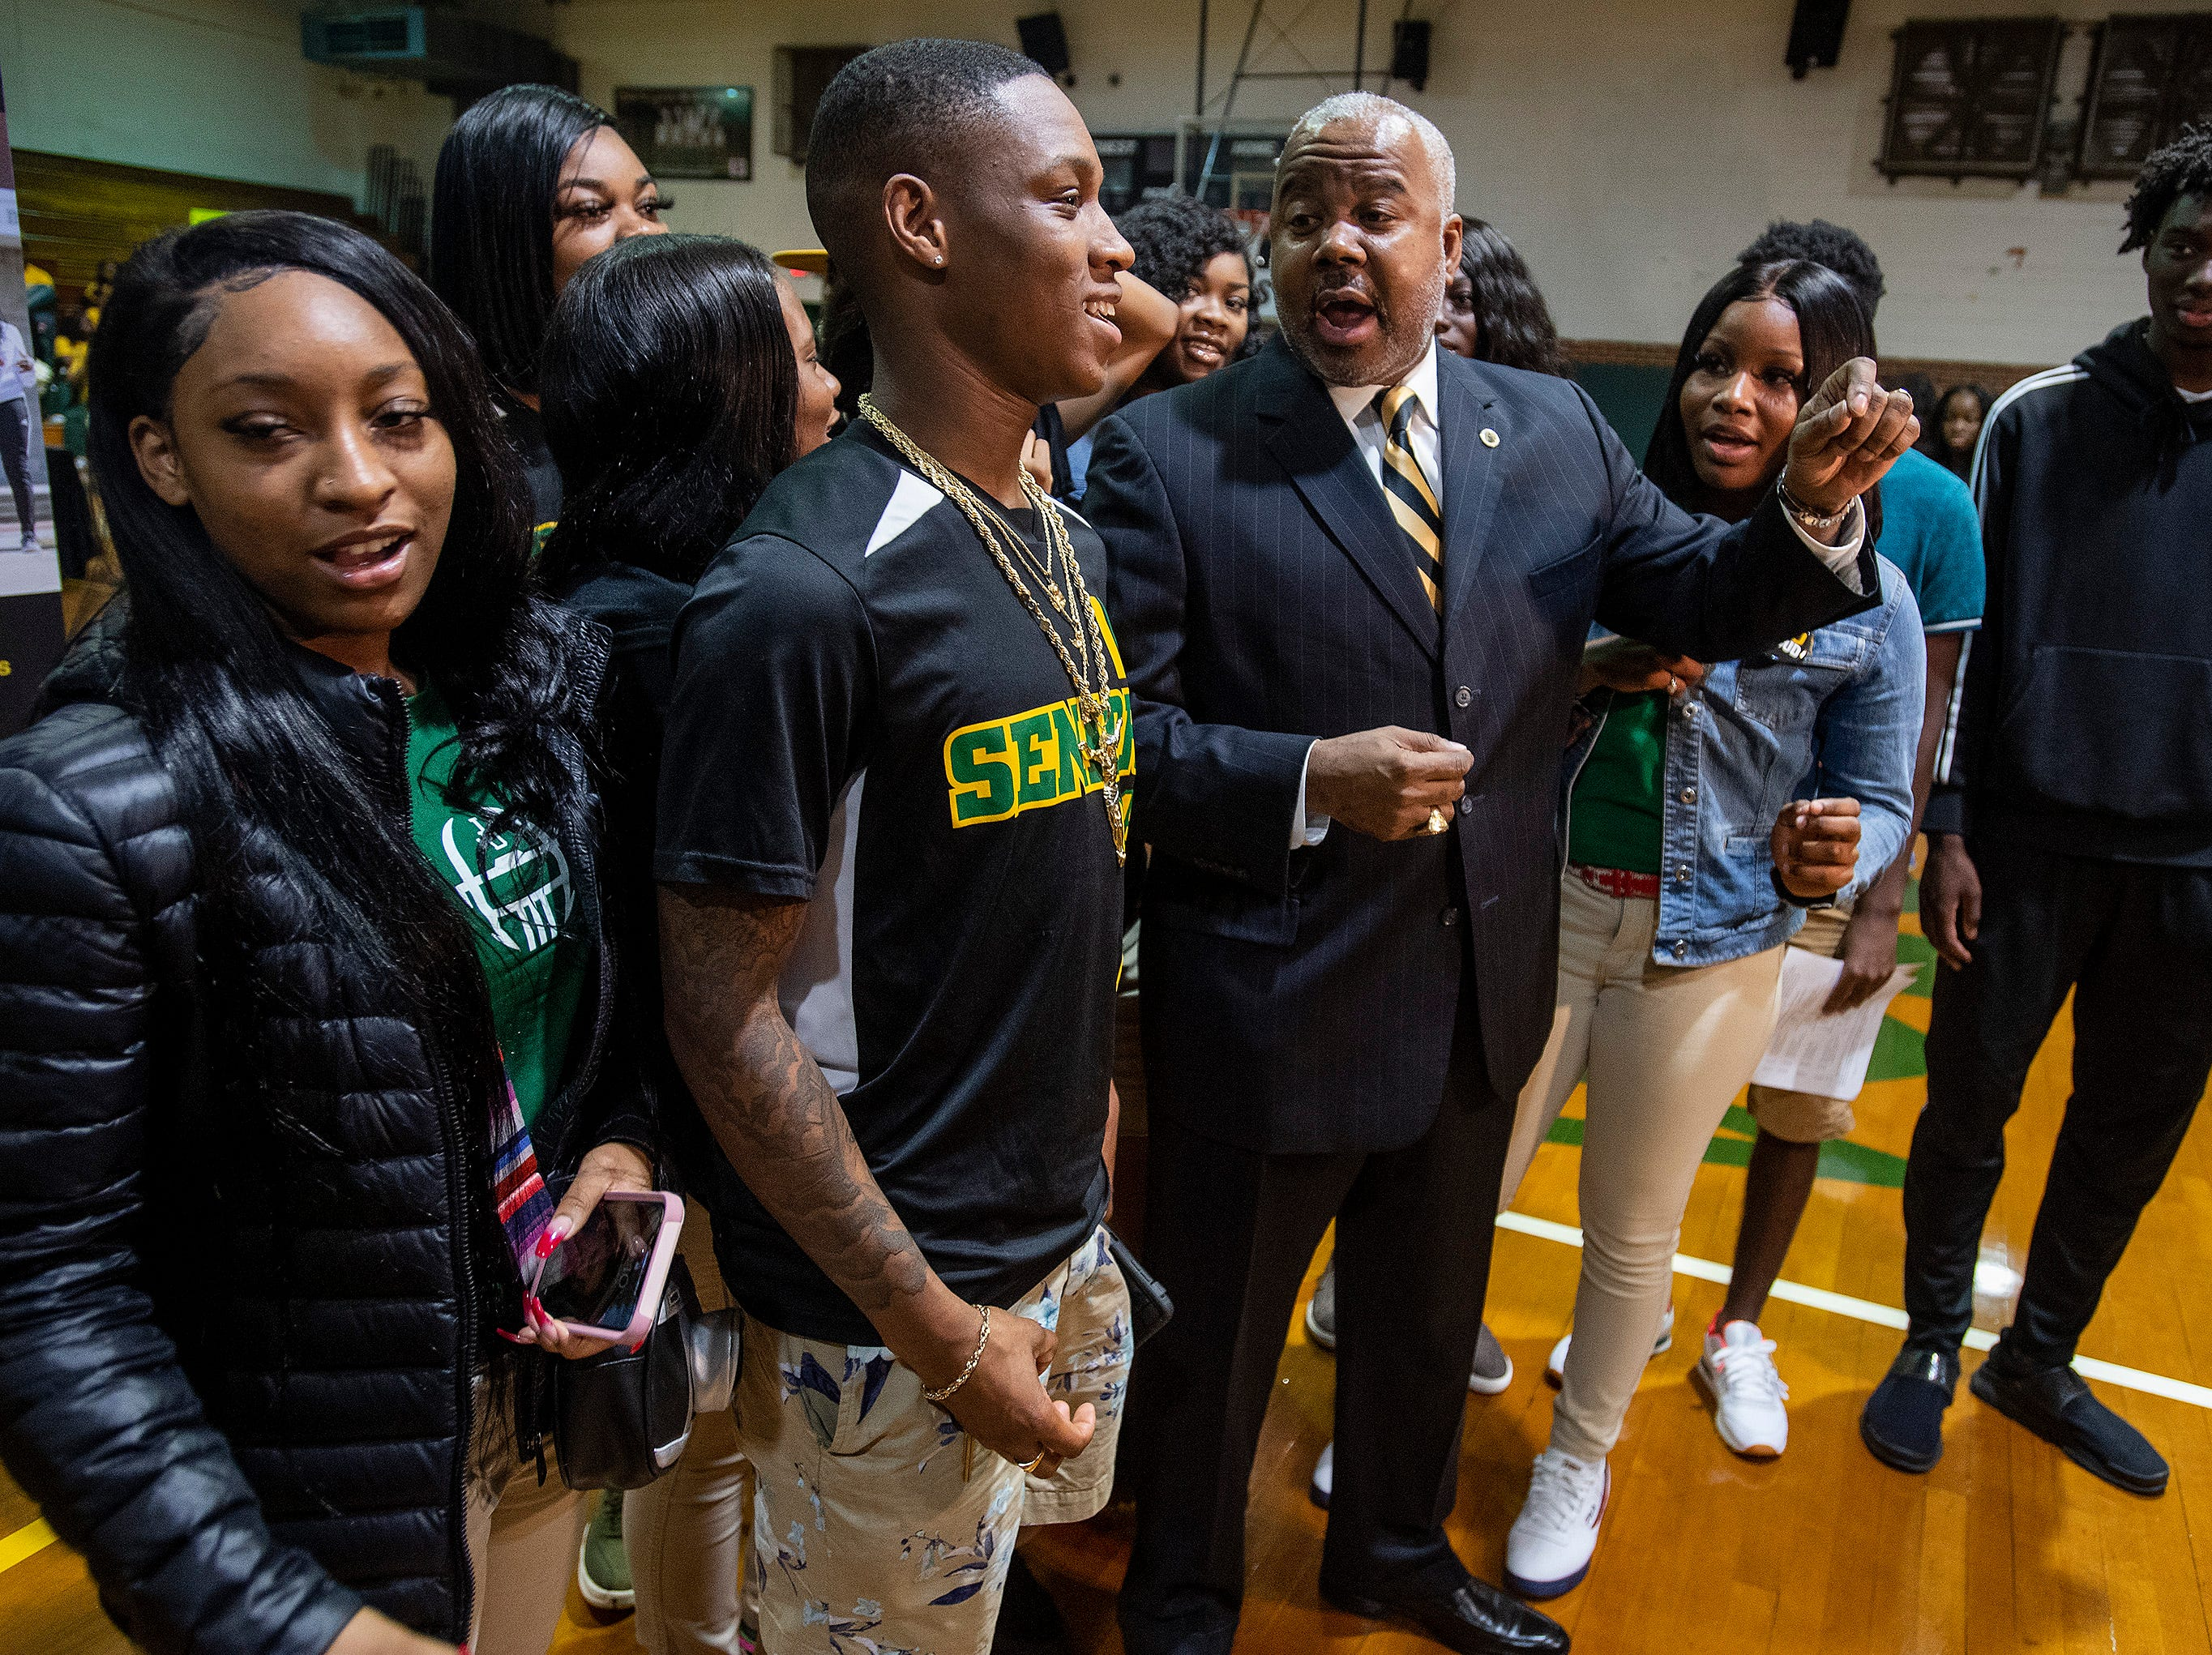 Alabama State University President Quinton Ross talks with Jeff Davis High School students during the ASU President's Tour stop at the school in Montgomery, Ala., on Friday April 12, 2019.